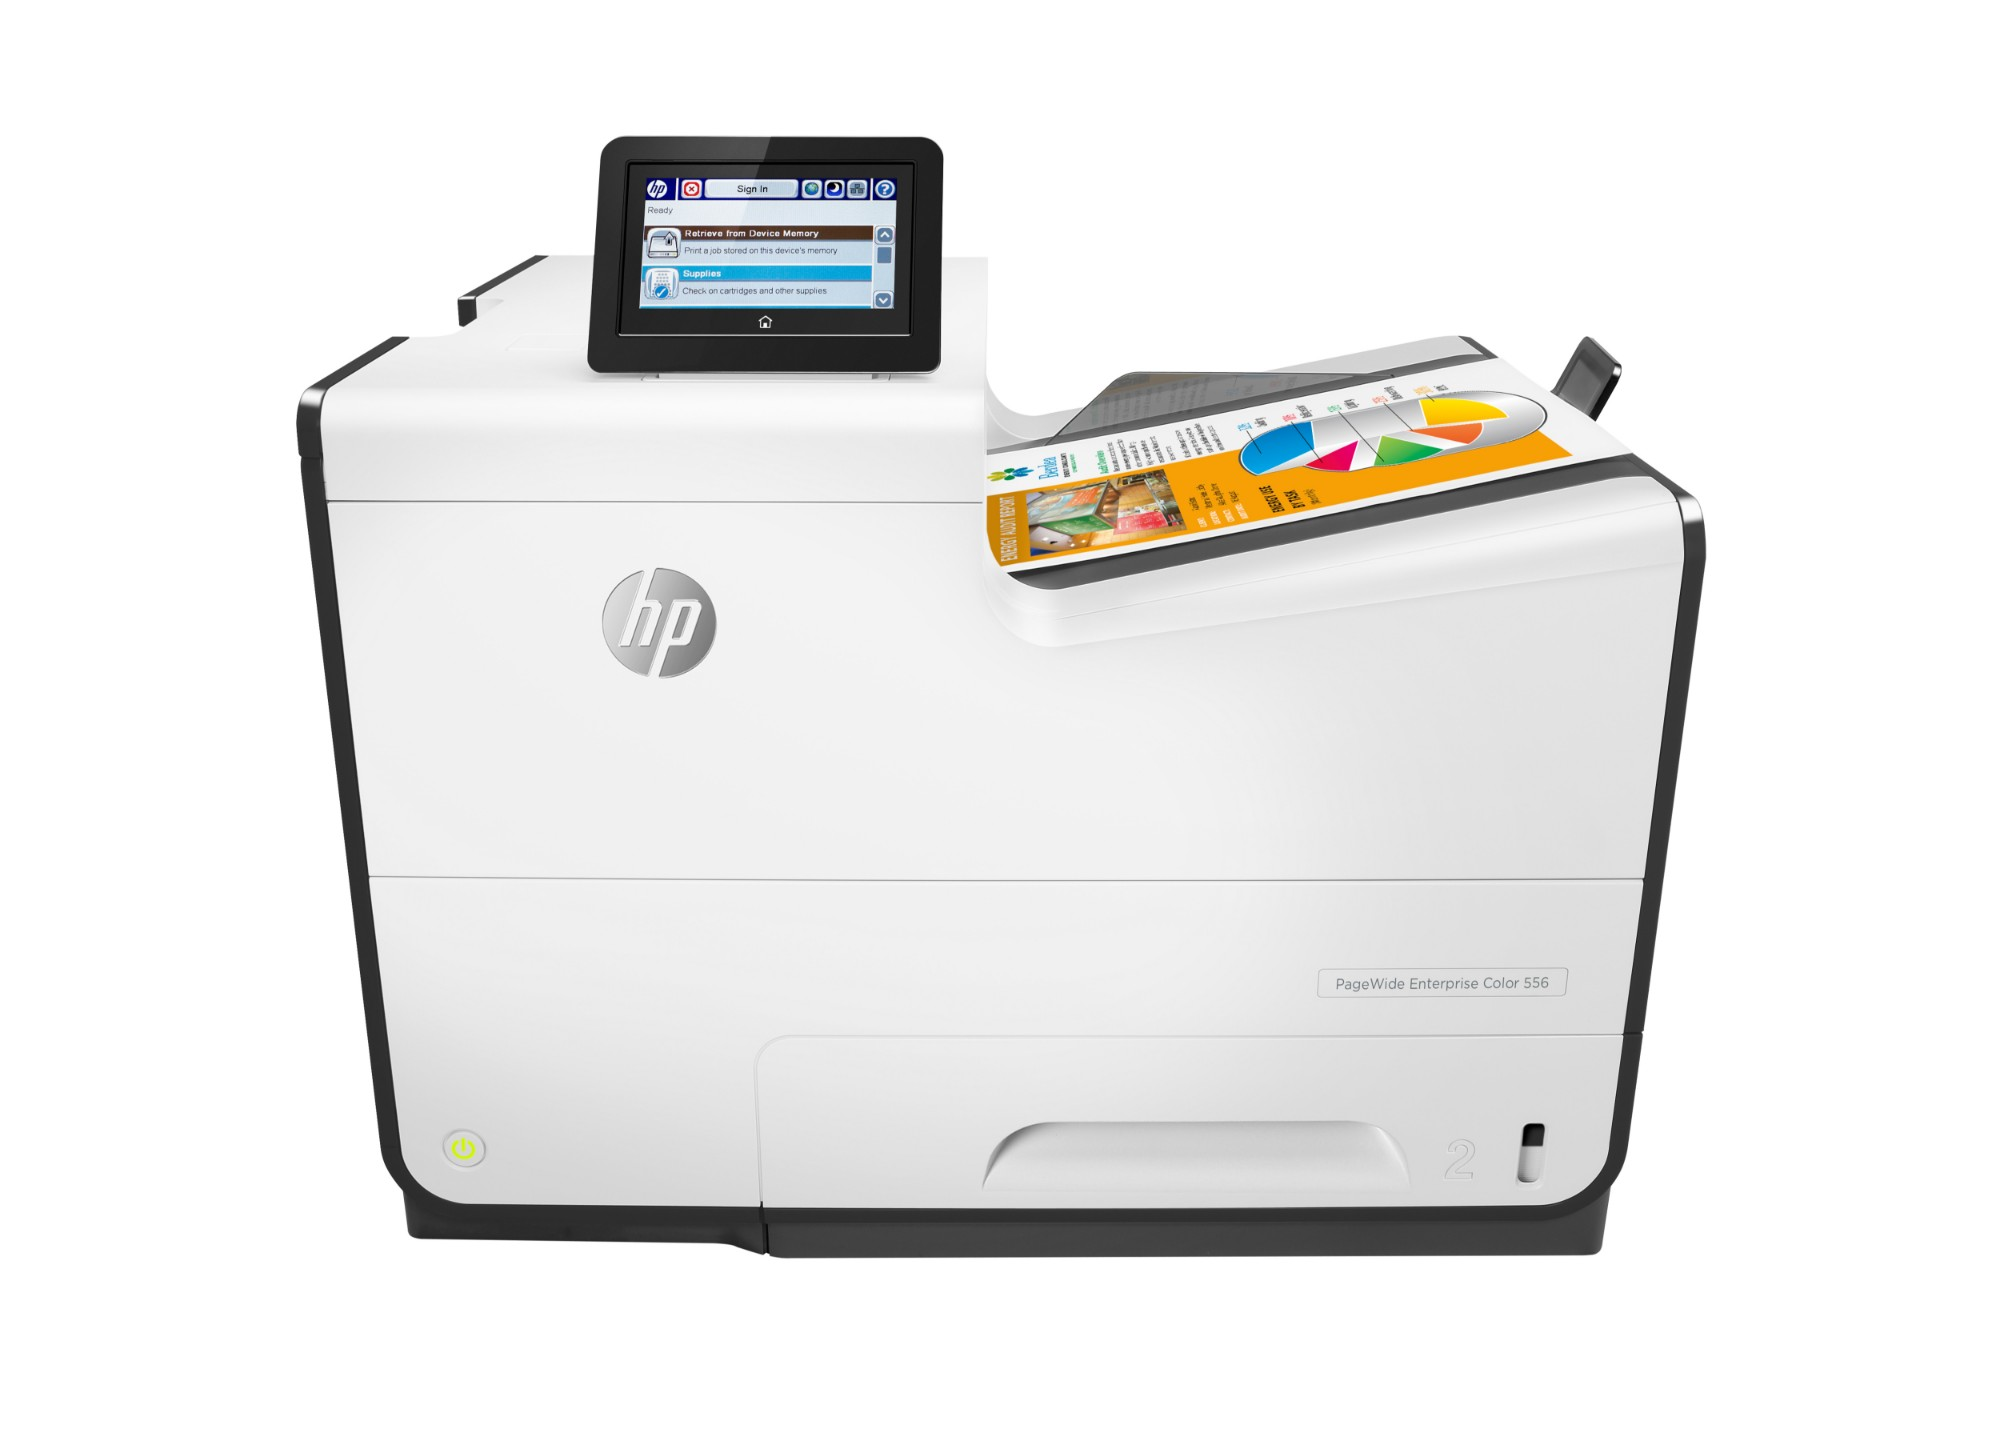 HP PageWide Enterprise Color 556dn inkjet printer Colour 2400 x 1200 DPI A4